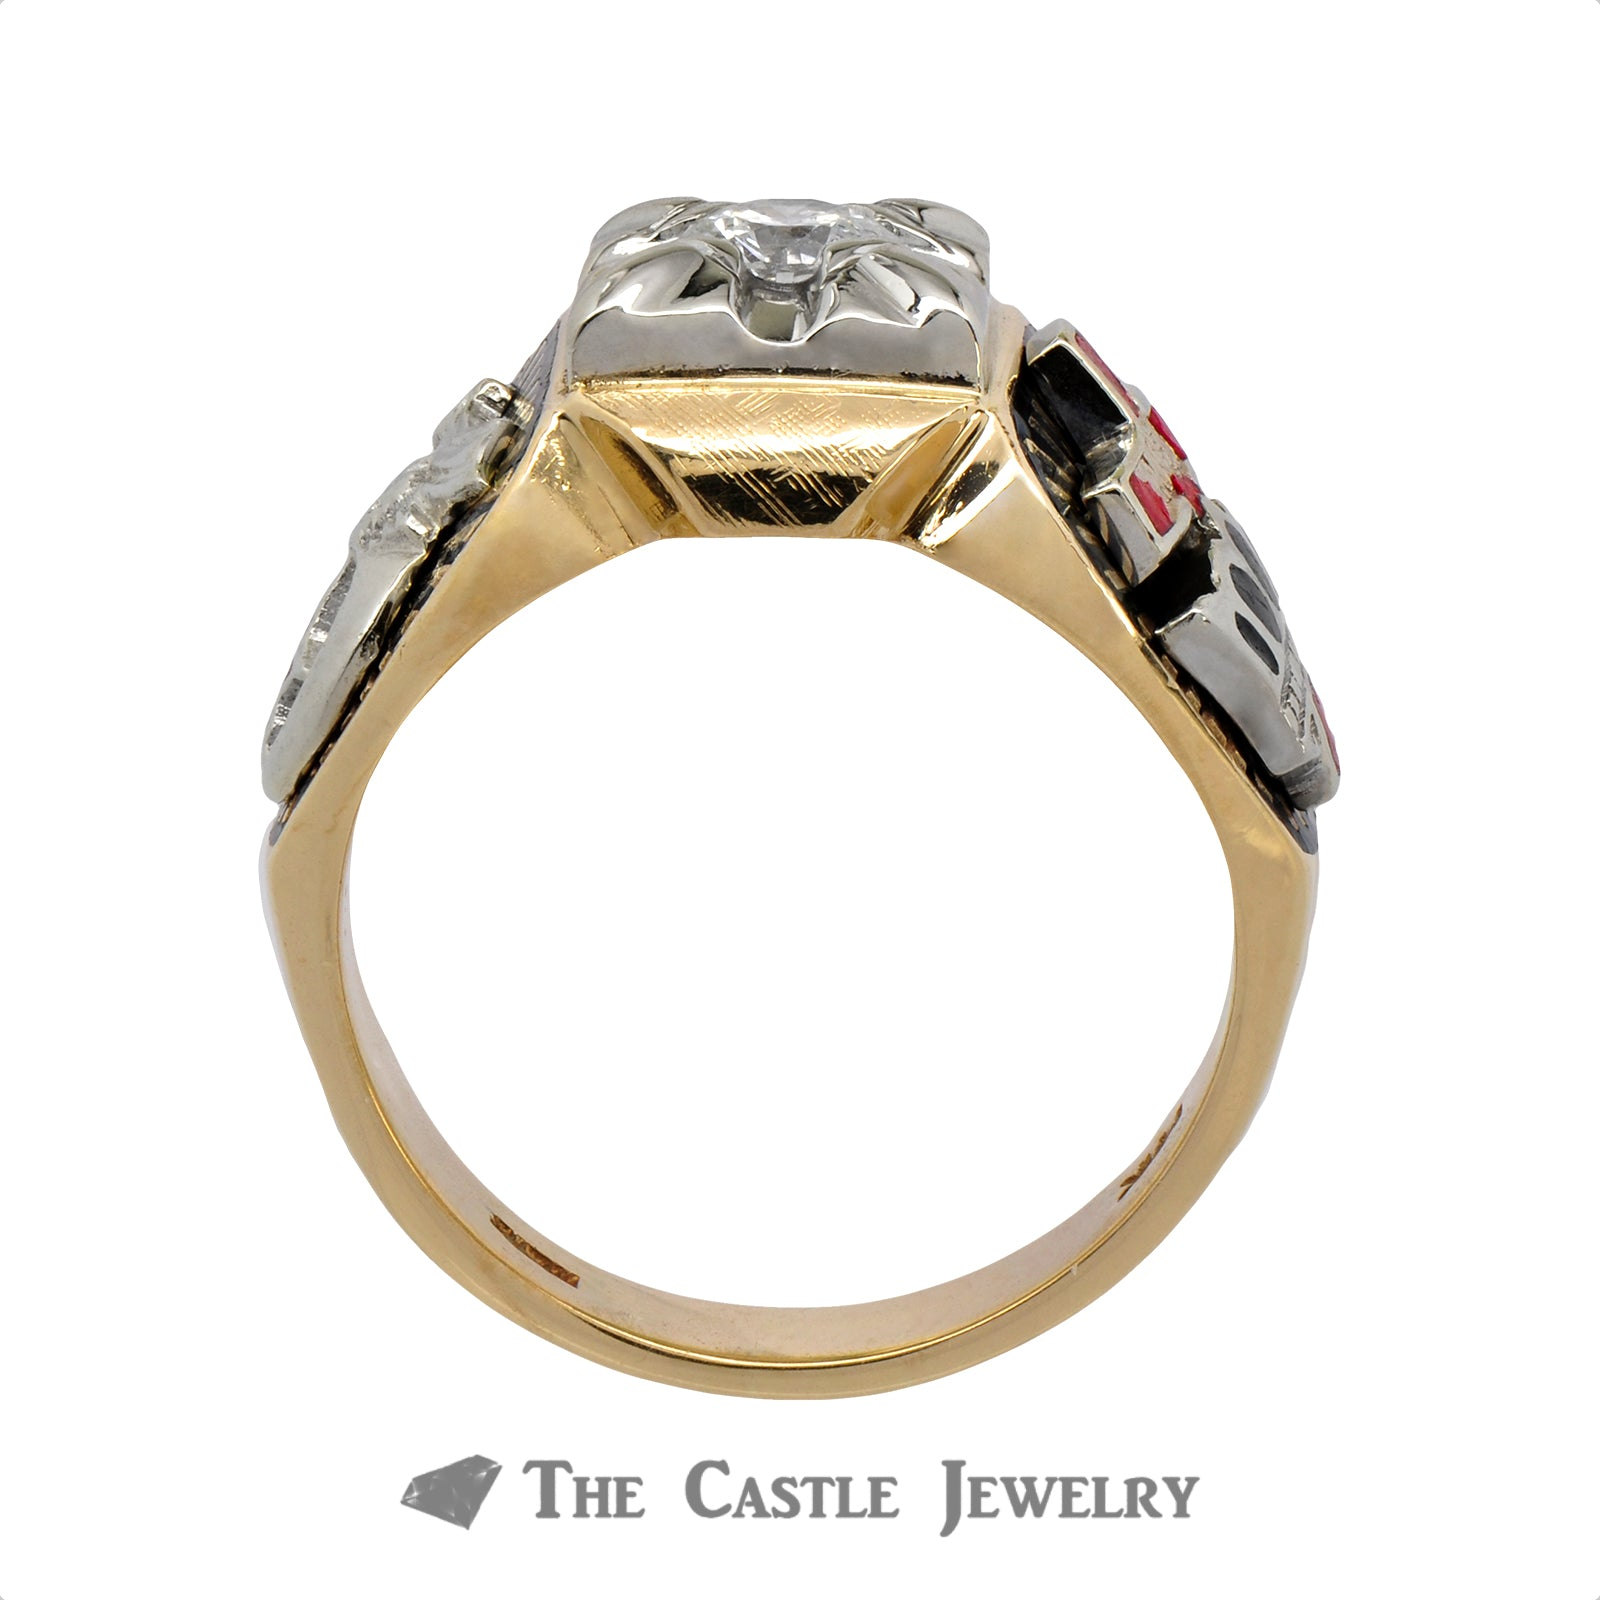 Ancient Order of the Nobles of the Mystic Shrine Ring with Diamond Solitaire-1